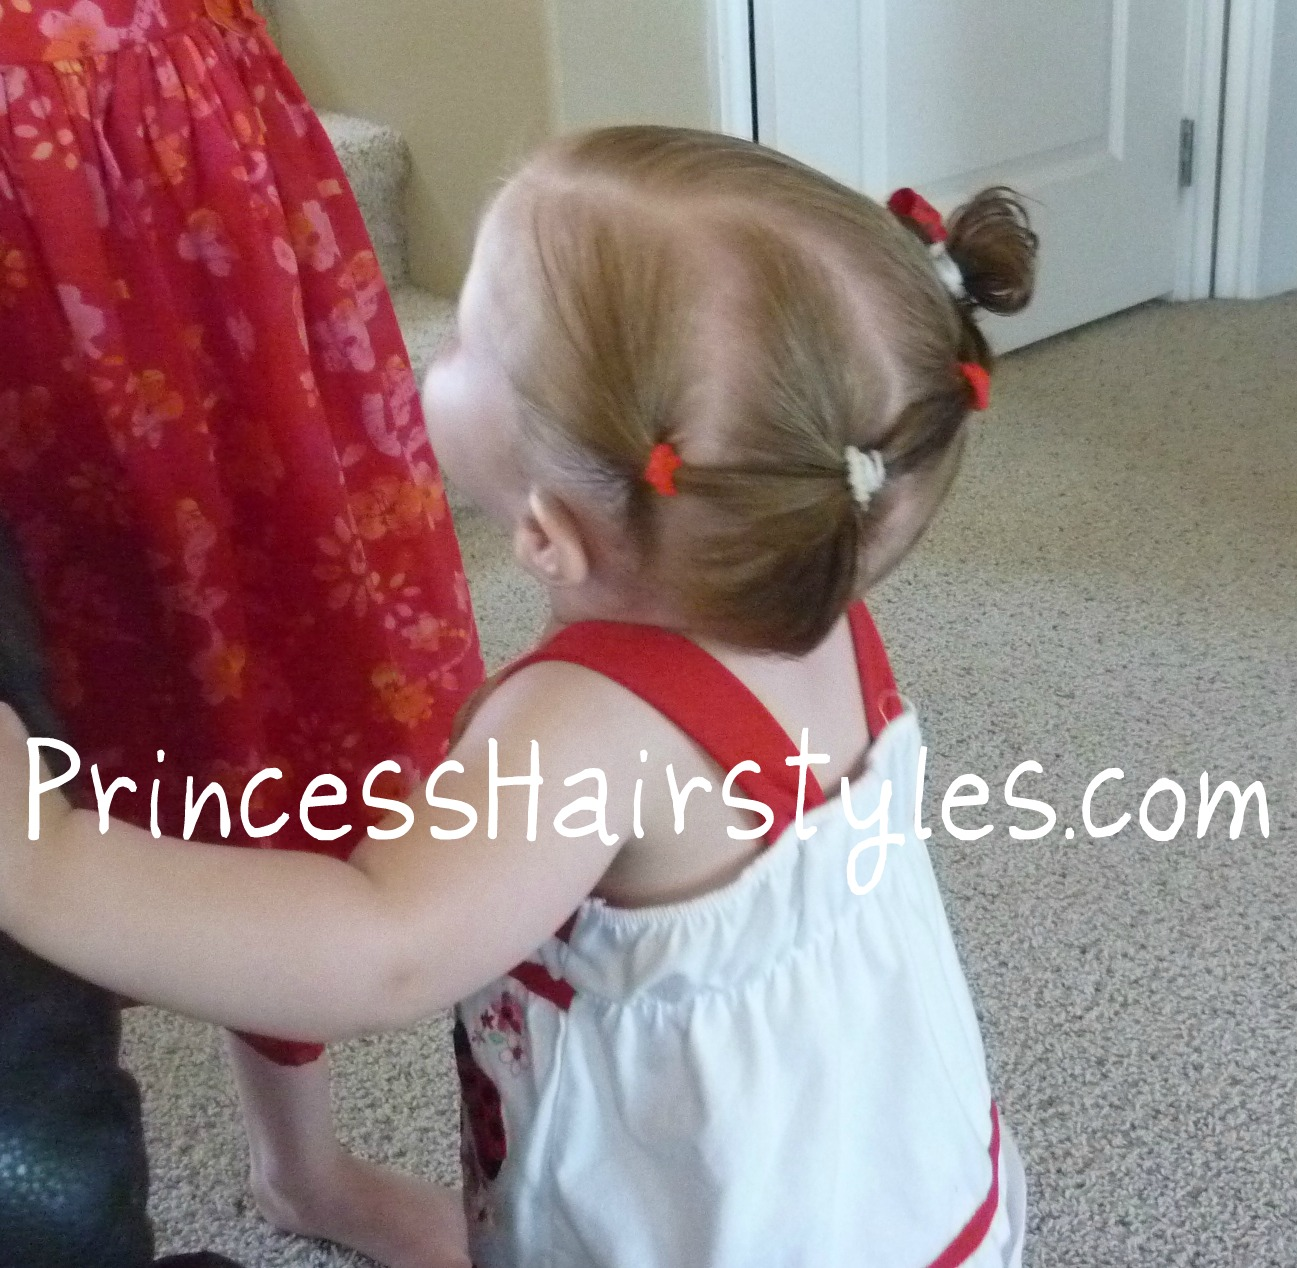 Hairstyles For Babies adorable toddler hairstyles Cute Hairstyles For A Baby